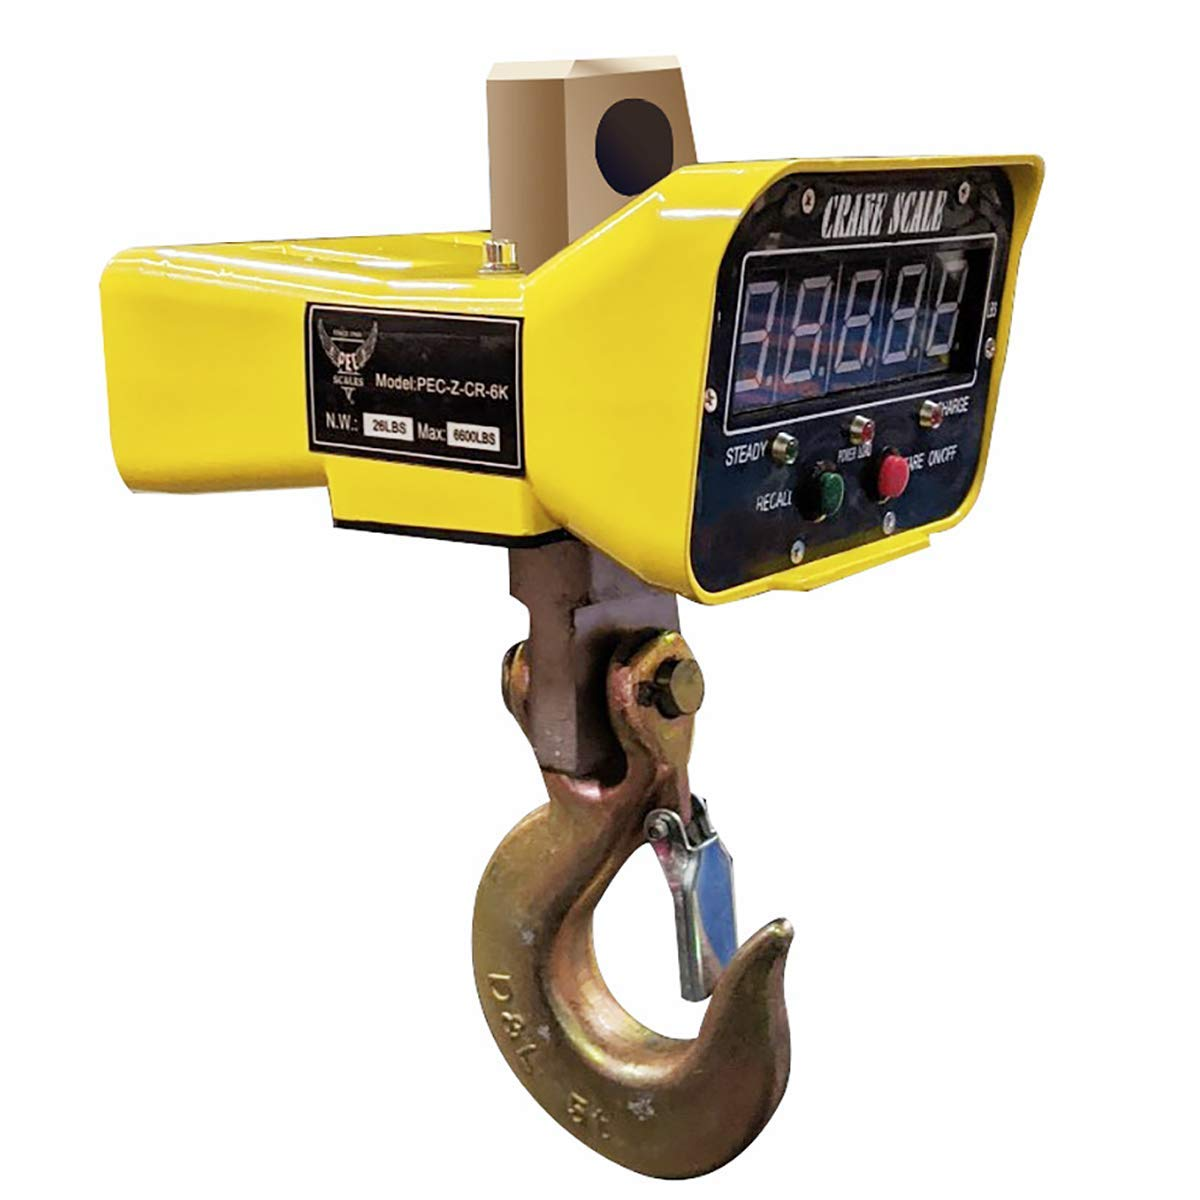 PEC New Digital Crane Scale, Heavy-Duty Industrial Hanging Scale, Commercial Scales with Large LED Display, Weighing Capacity (6600 lb)